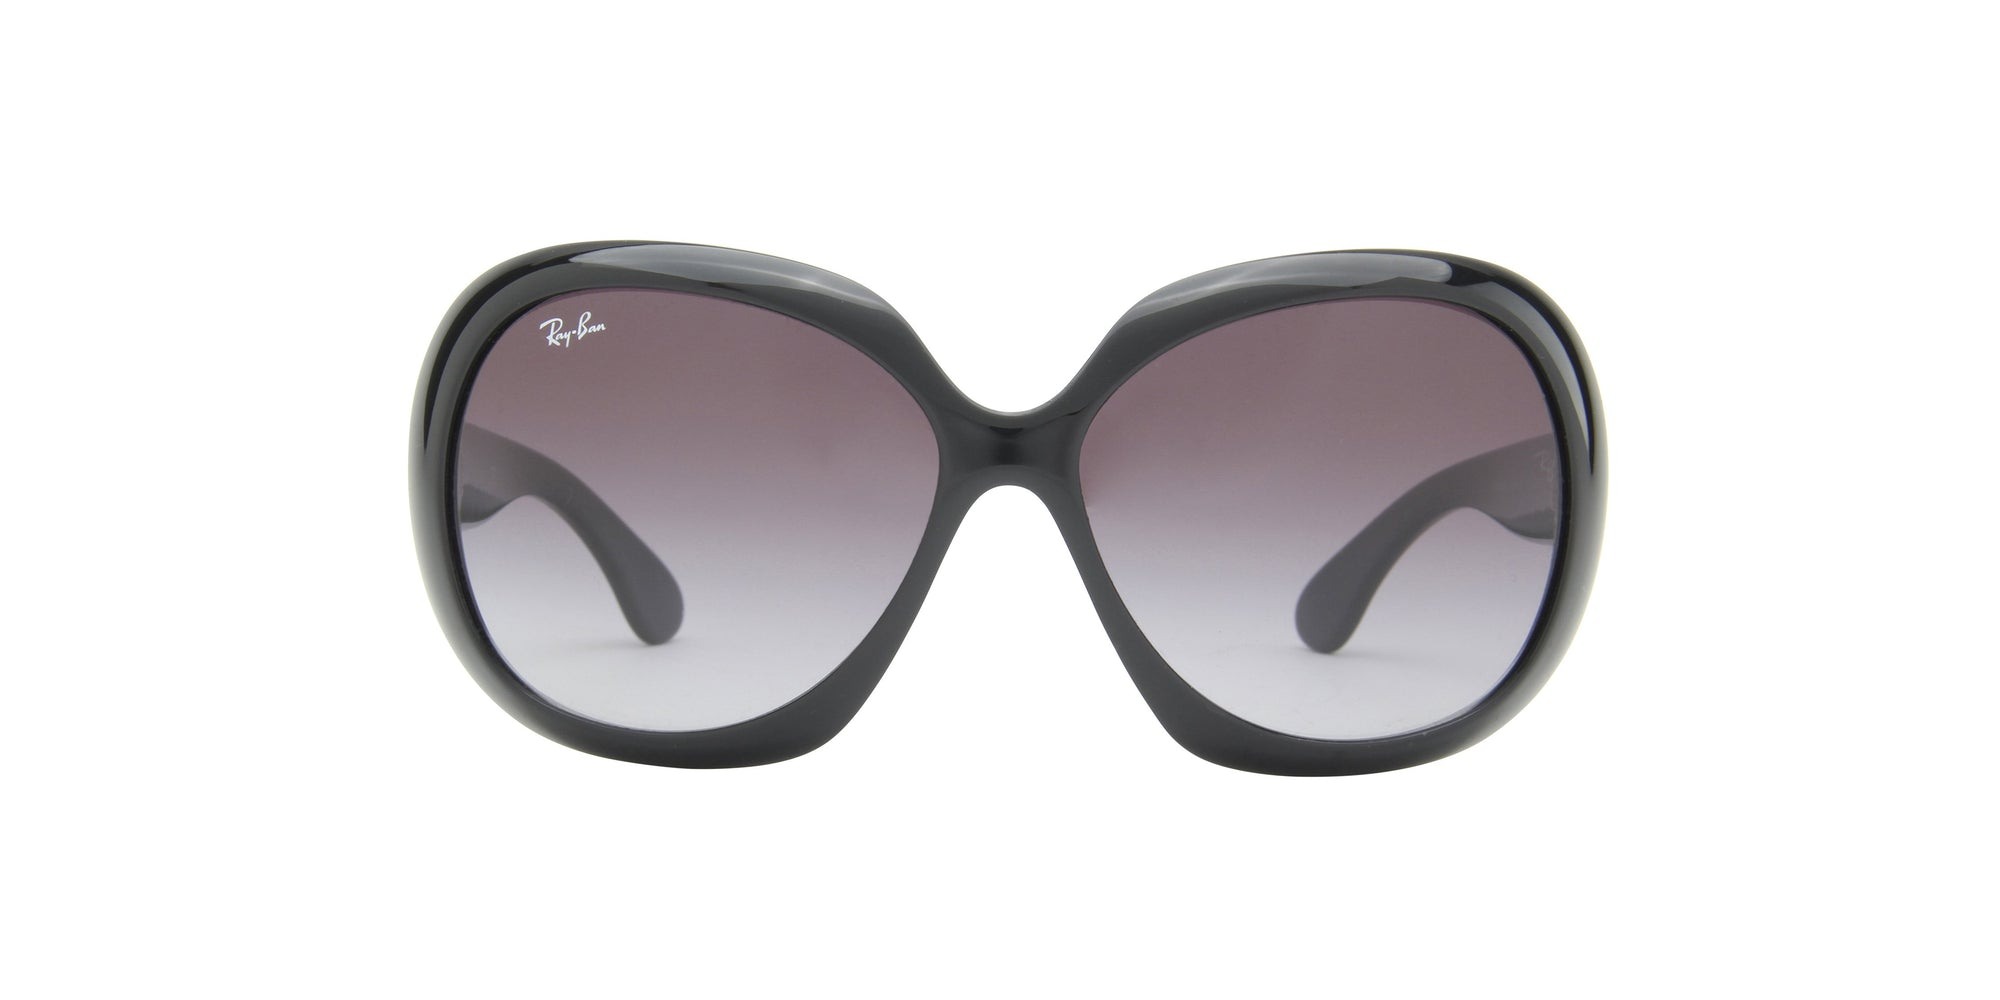 Ray Ban - RB4098 Black Oval Unisex Sunglasses - 60mm-Sunglasses-Designer Eyes